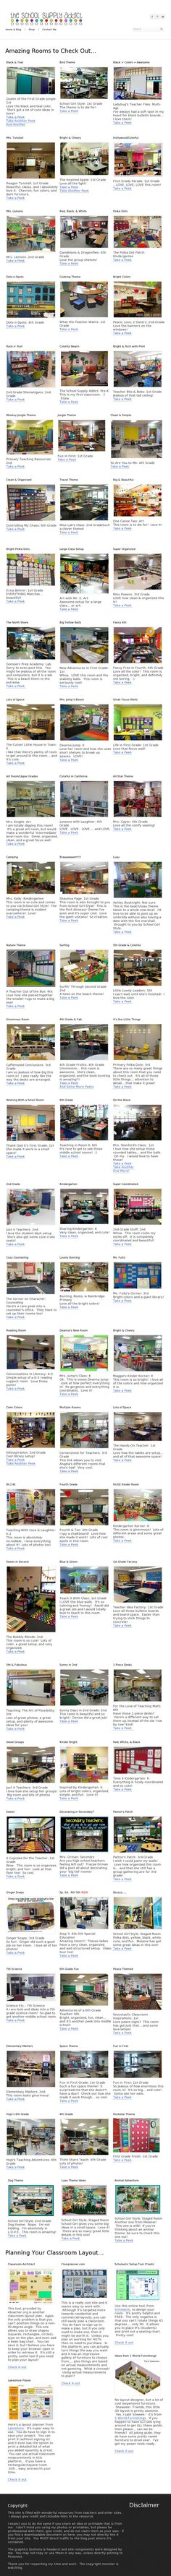 Here are some great classroom set-up ideas for the school year!  Perfect for elementary and middle grades